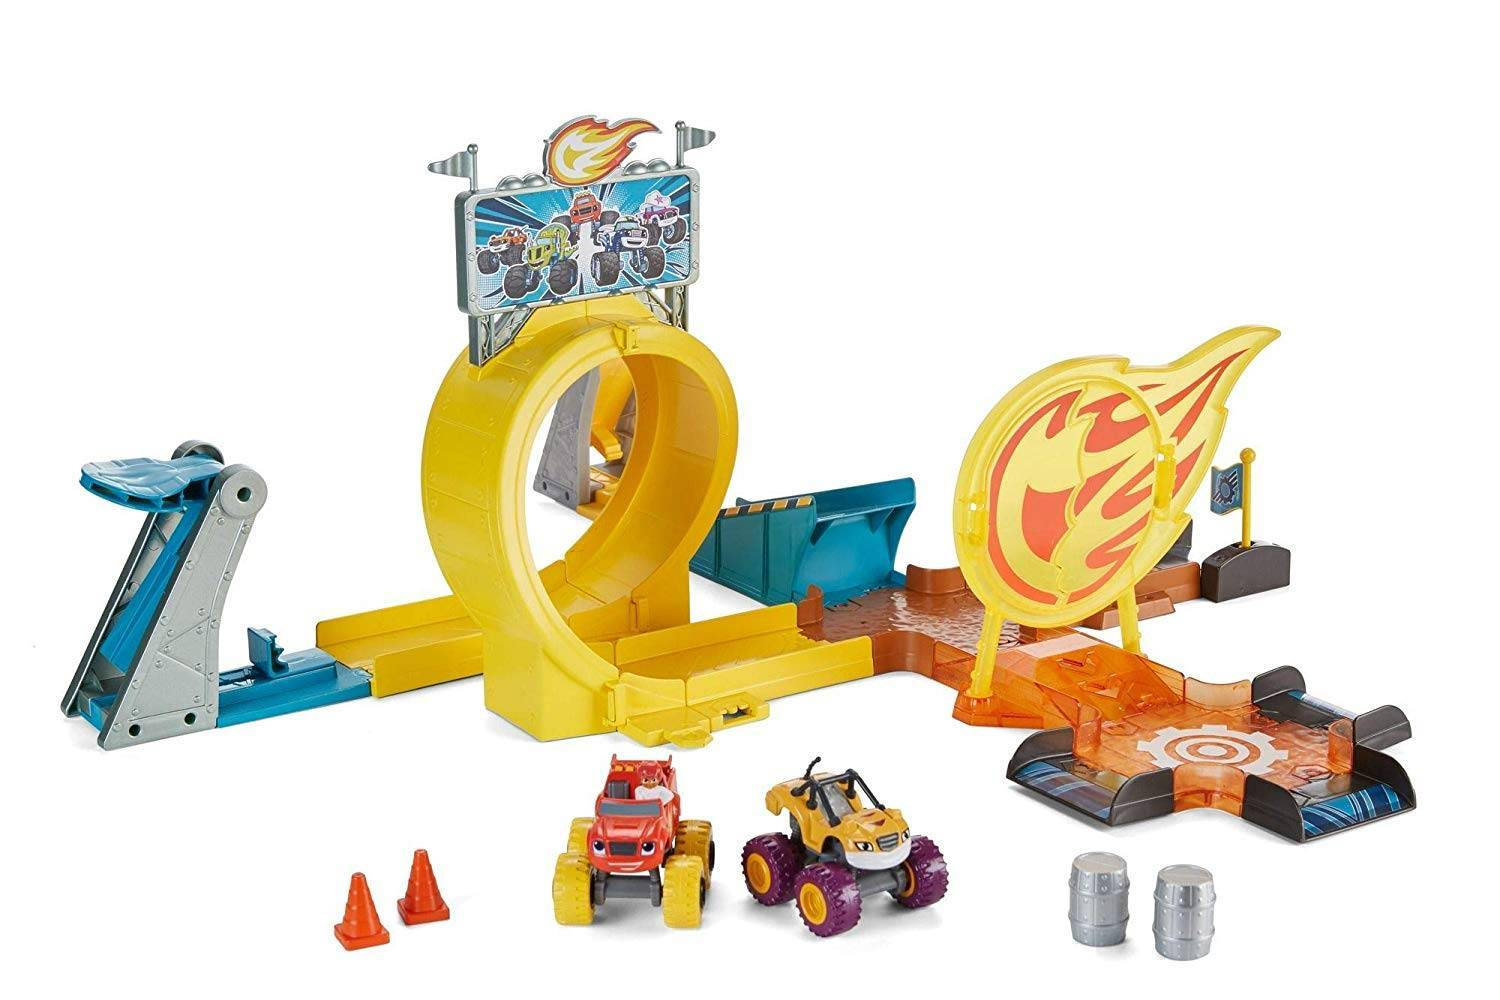 Axel City Playset Fisher-Price - Mattel GFC08 - Noy Brinquedos